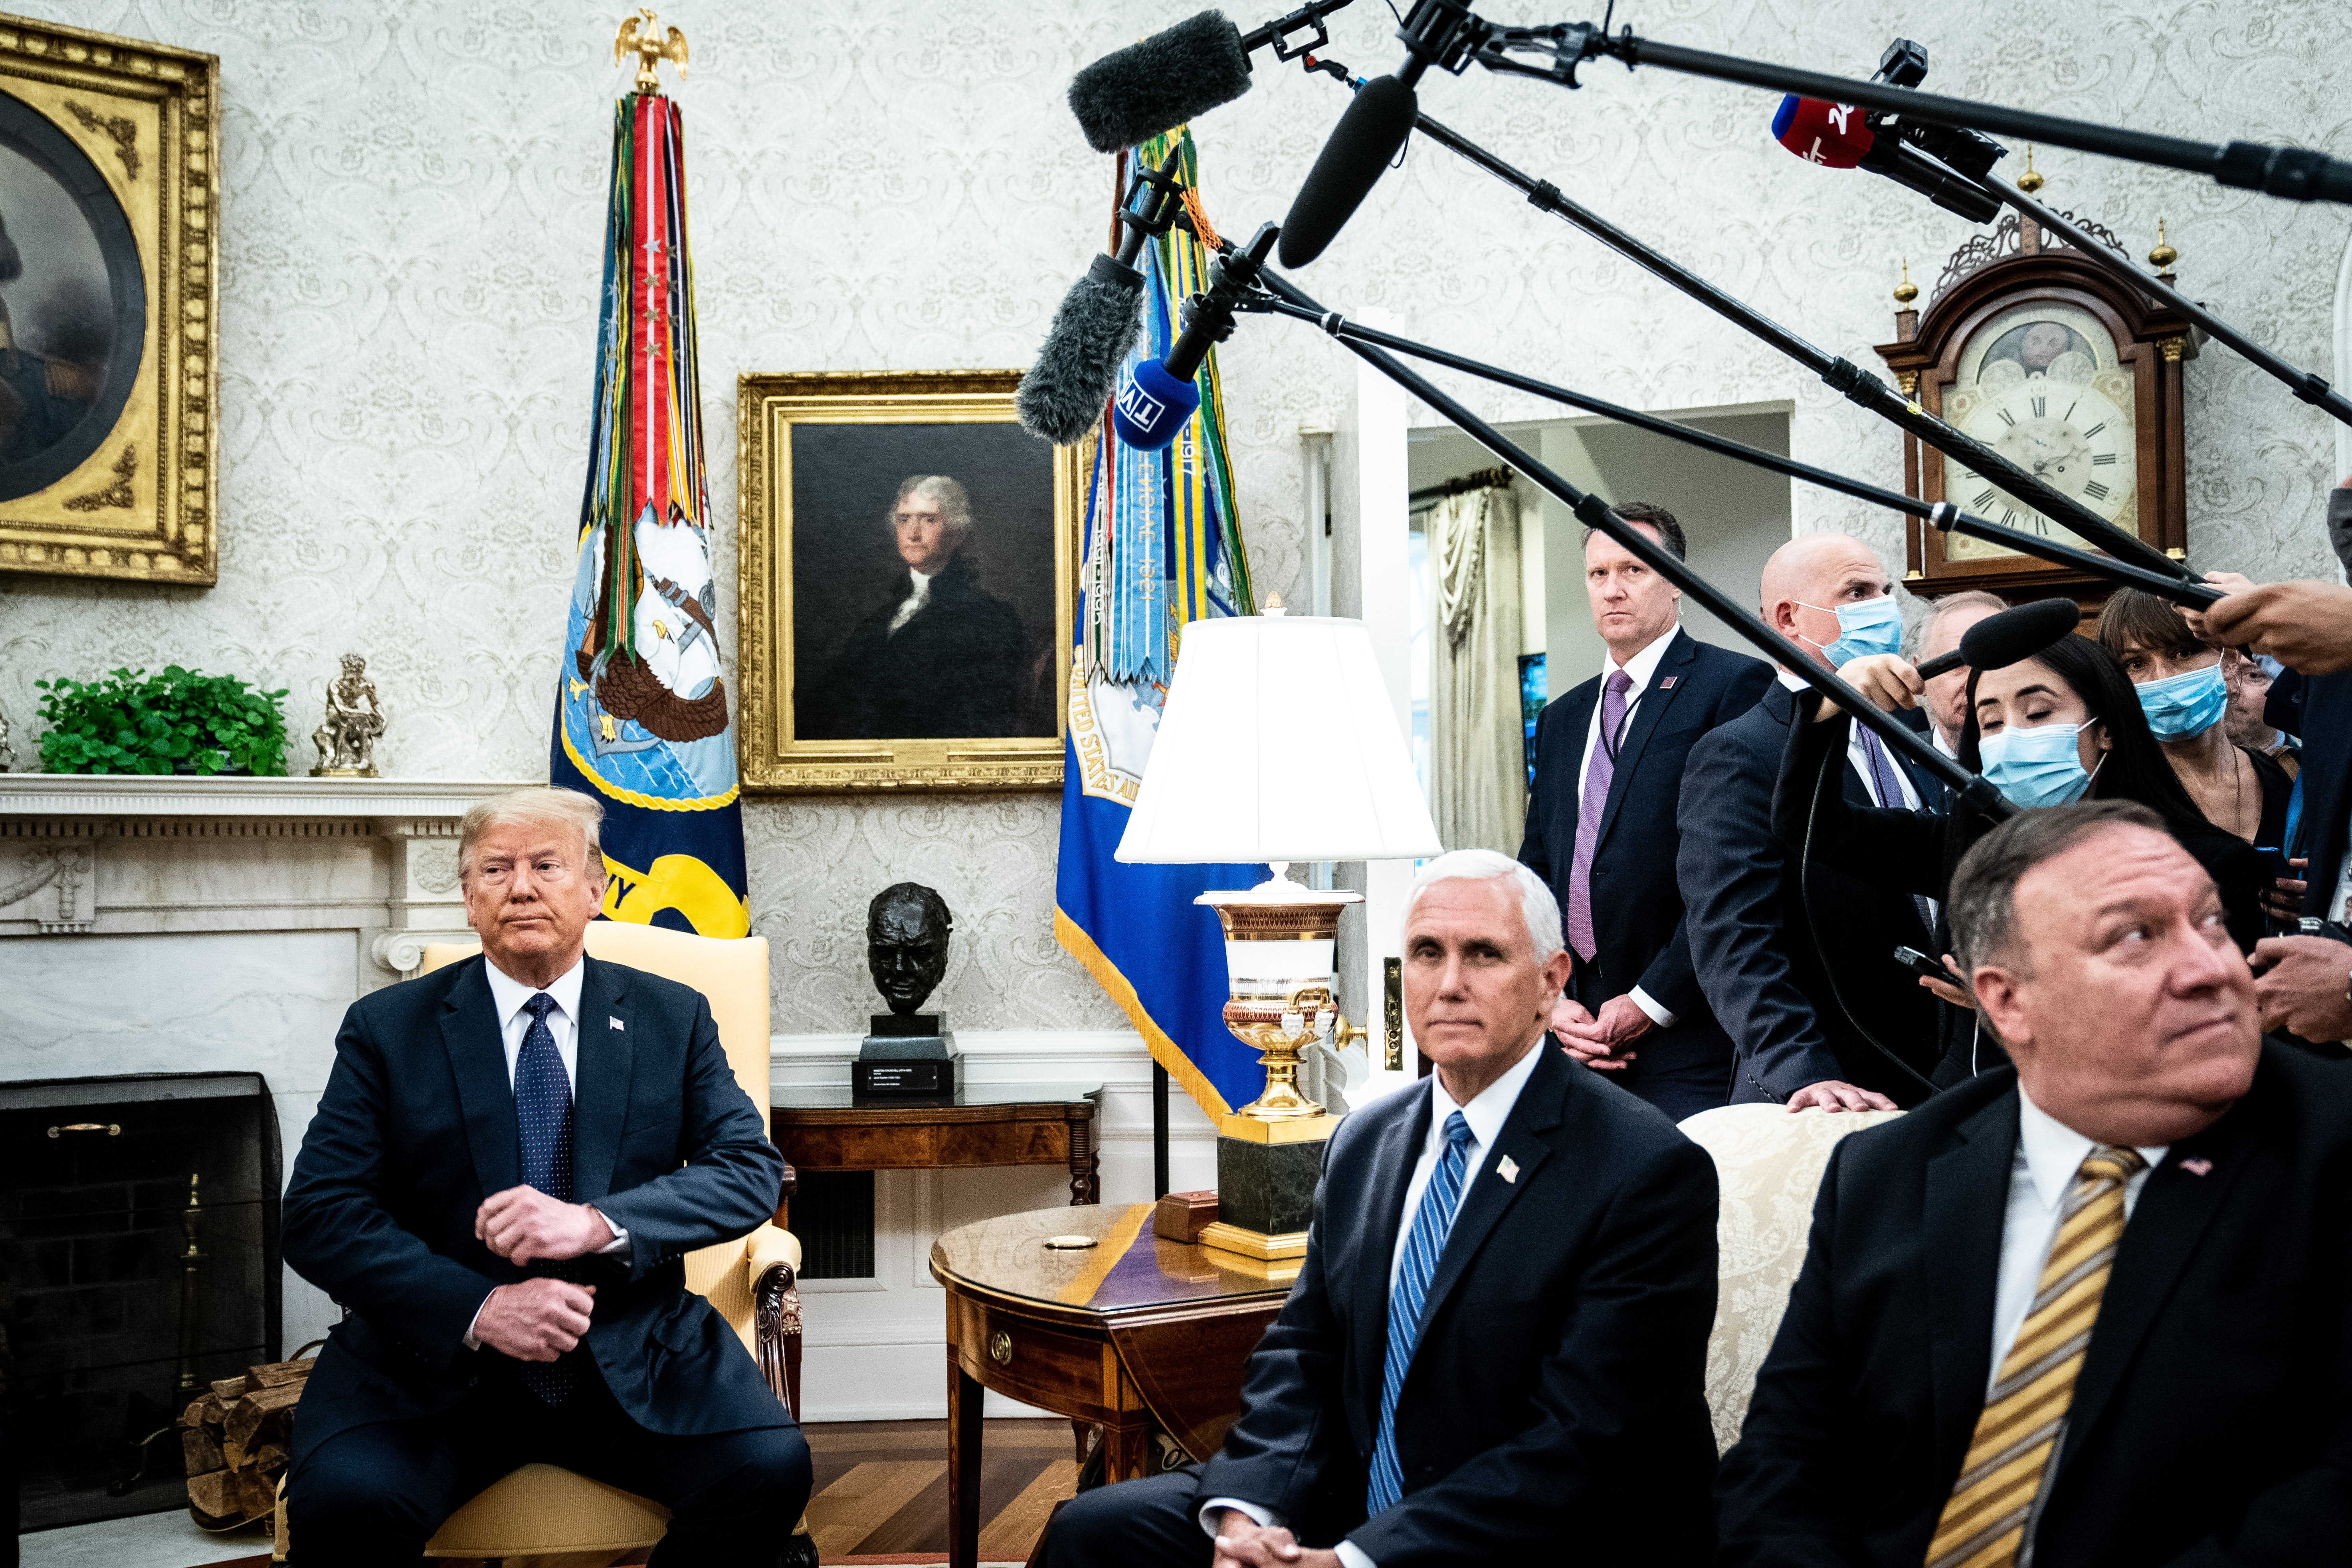 WASHINGTON, DC - JUNE 24: (L-R) U.S. President Donald Trump, Vice President Mike Pence and Secretary of State Mike Pompeo attend a meeting with Polish President Andrzej Duda in the Oval Office of the White House on June 24, 2020 in Washington, DC. Duda, who faces a tight re-election contest in four days, is Trump's first world leader visit from overseas since the coronavirus pandemic began. (Photo by Erin Schaff-Pool/Getty Images)